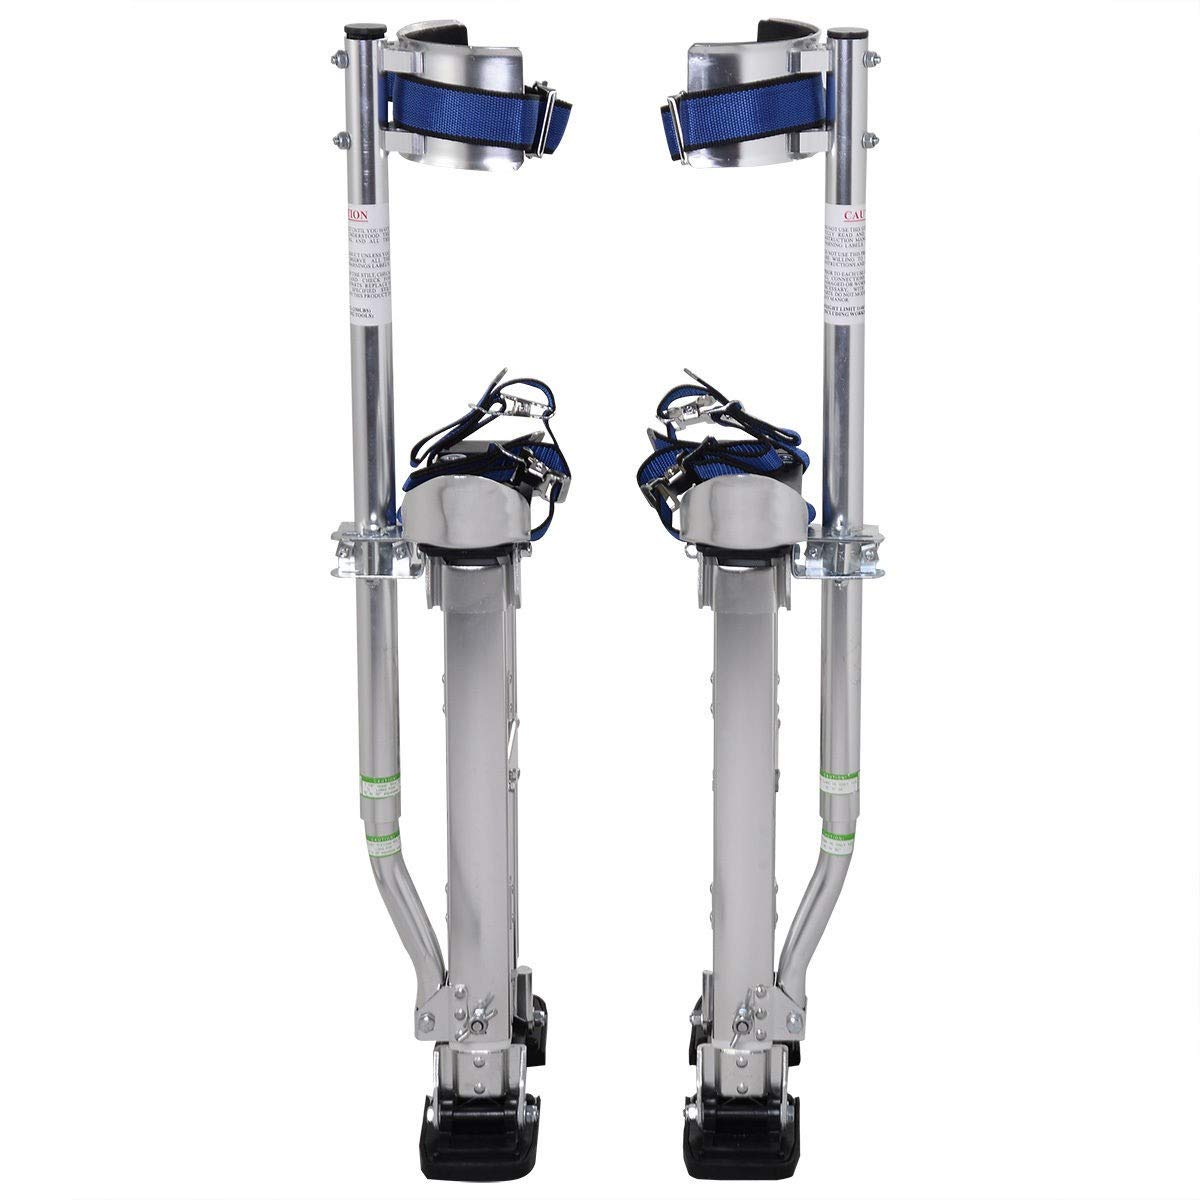 Silver 18''-30'' Aluminum Stilts Business & Industrial Light Equipment & Tool Home Toys & Games Outdoor Play Equipment Stilt Aluminium Commerce, Trade, Accessories, Accessory, Tools, Walking, Business by Lek Store